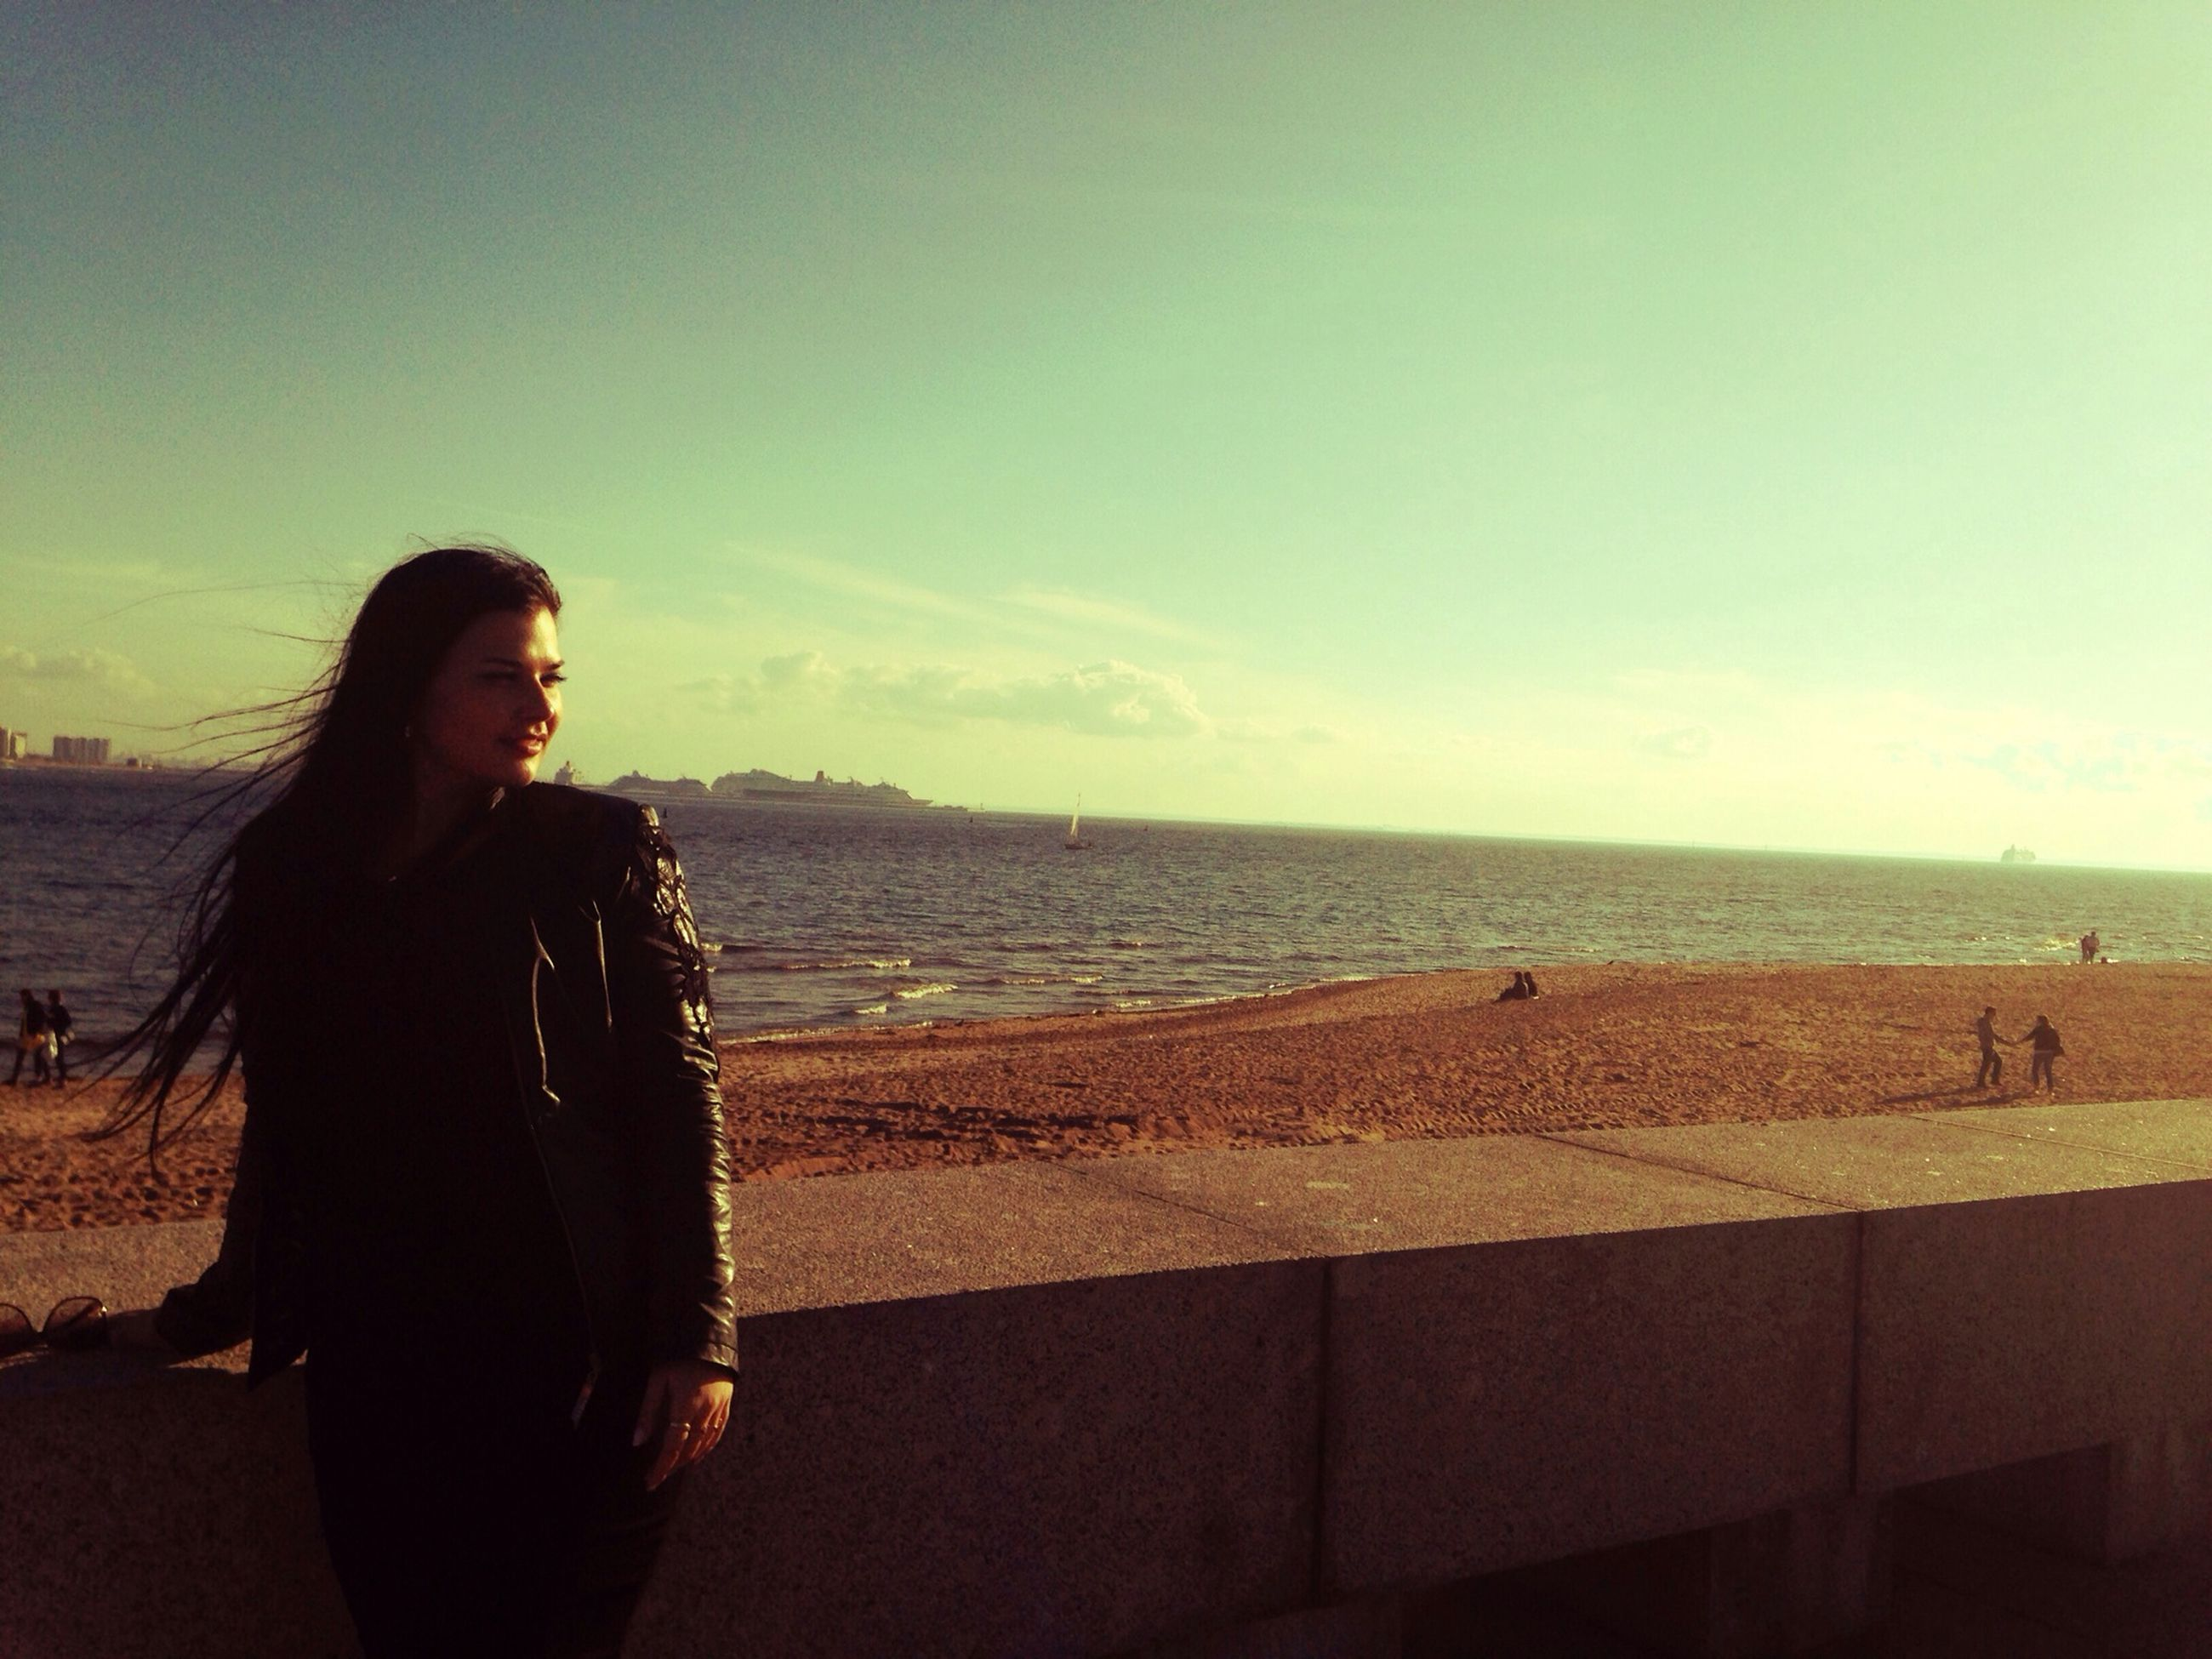 young adult, lifestyles, young women, leisure activity, sea, person, standing, horizon over water, casual clothing, sky, water, long hair, portrait, looking at camera, waist up, beach, scenics, looking at view